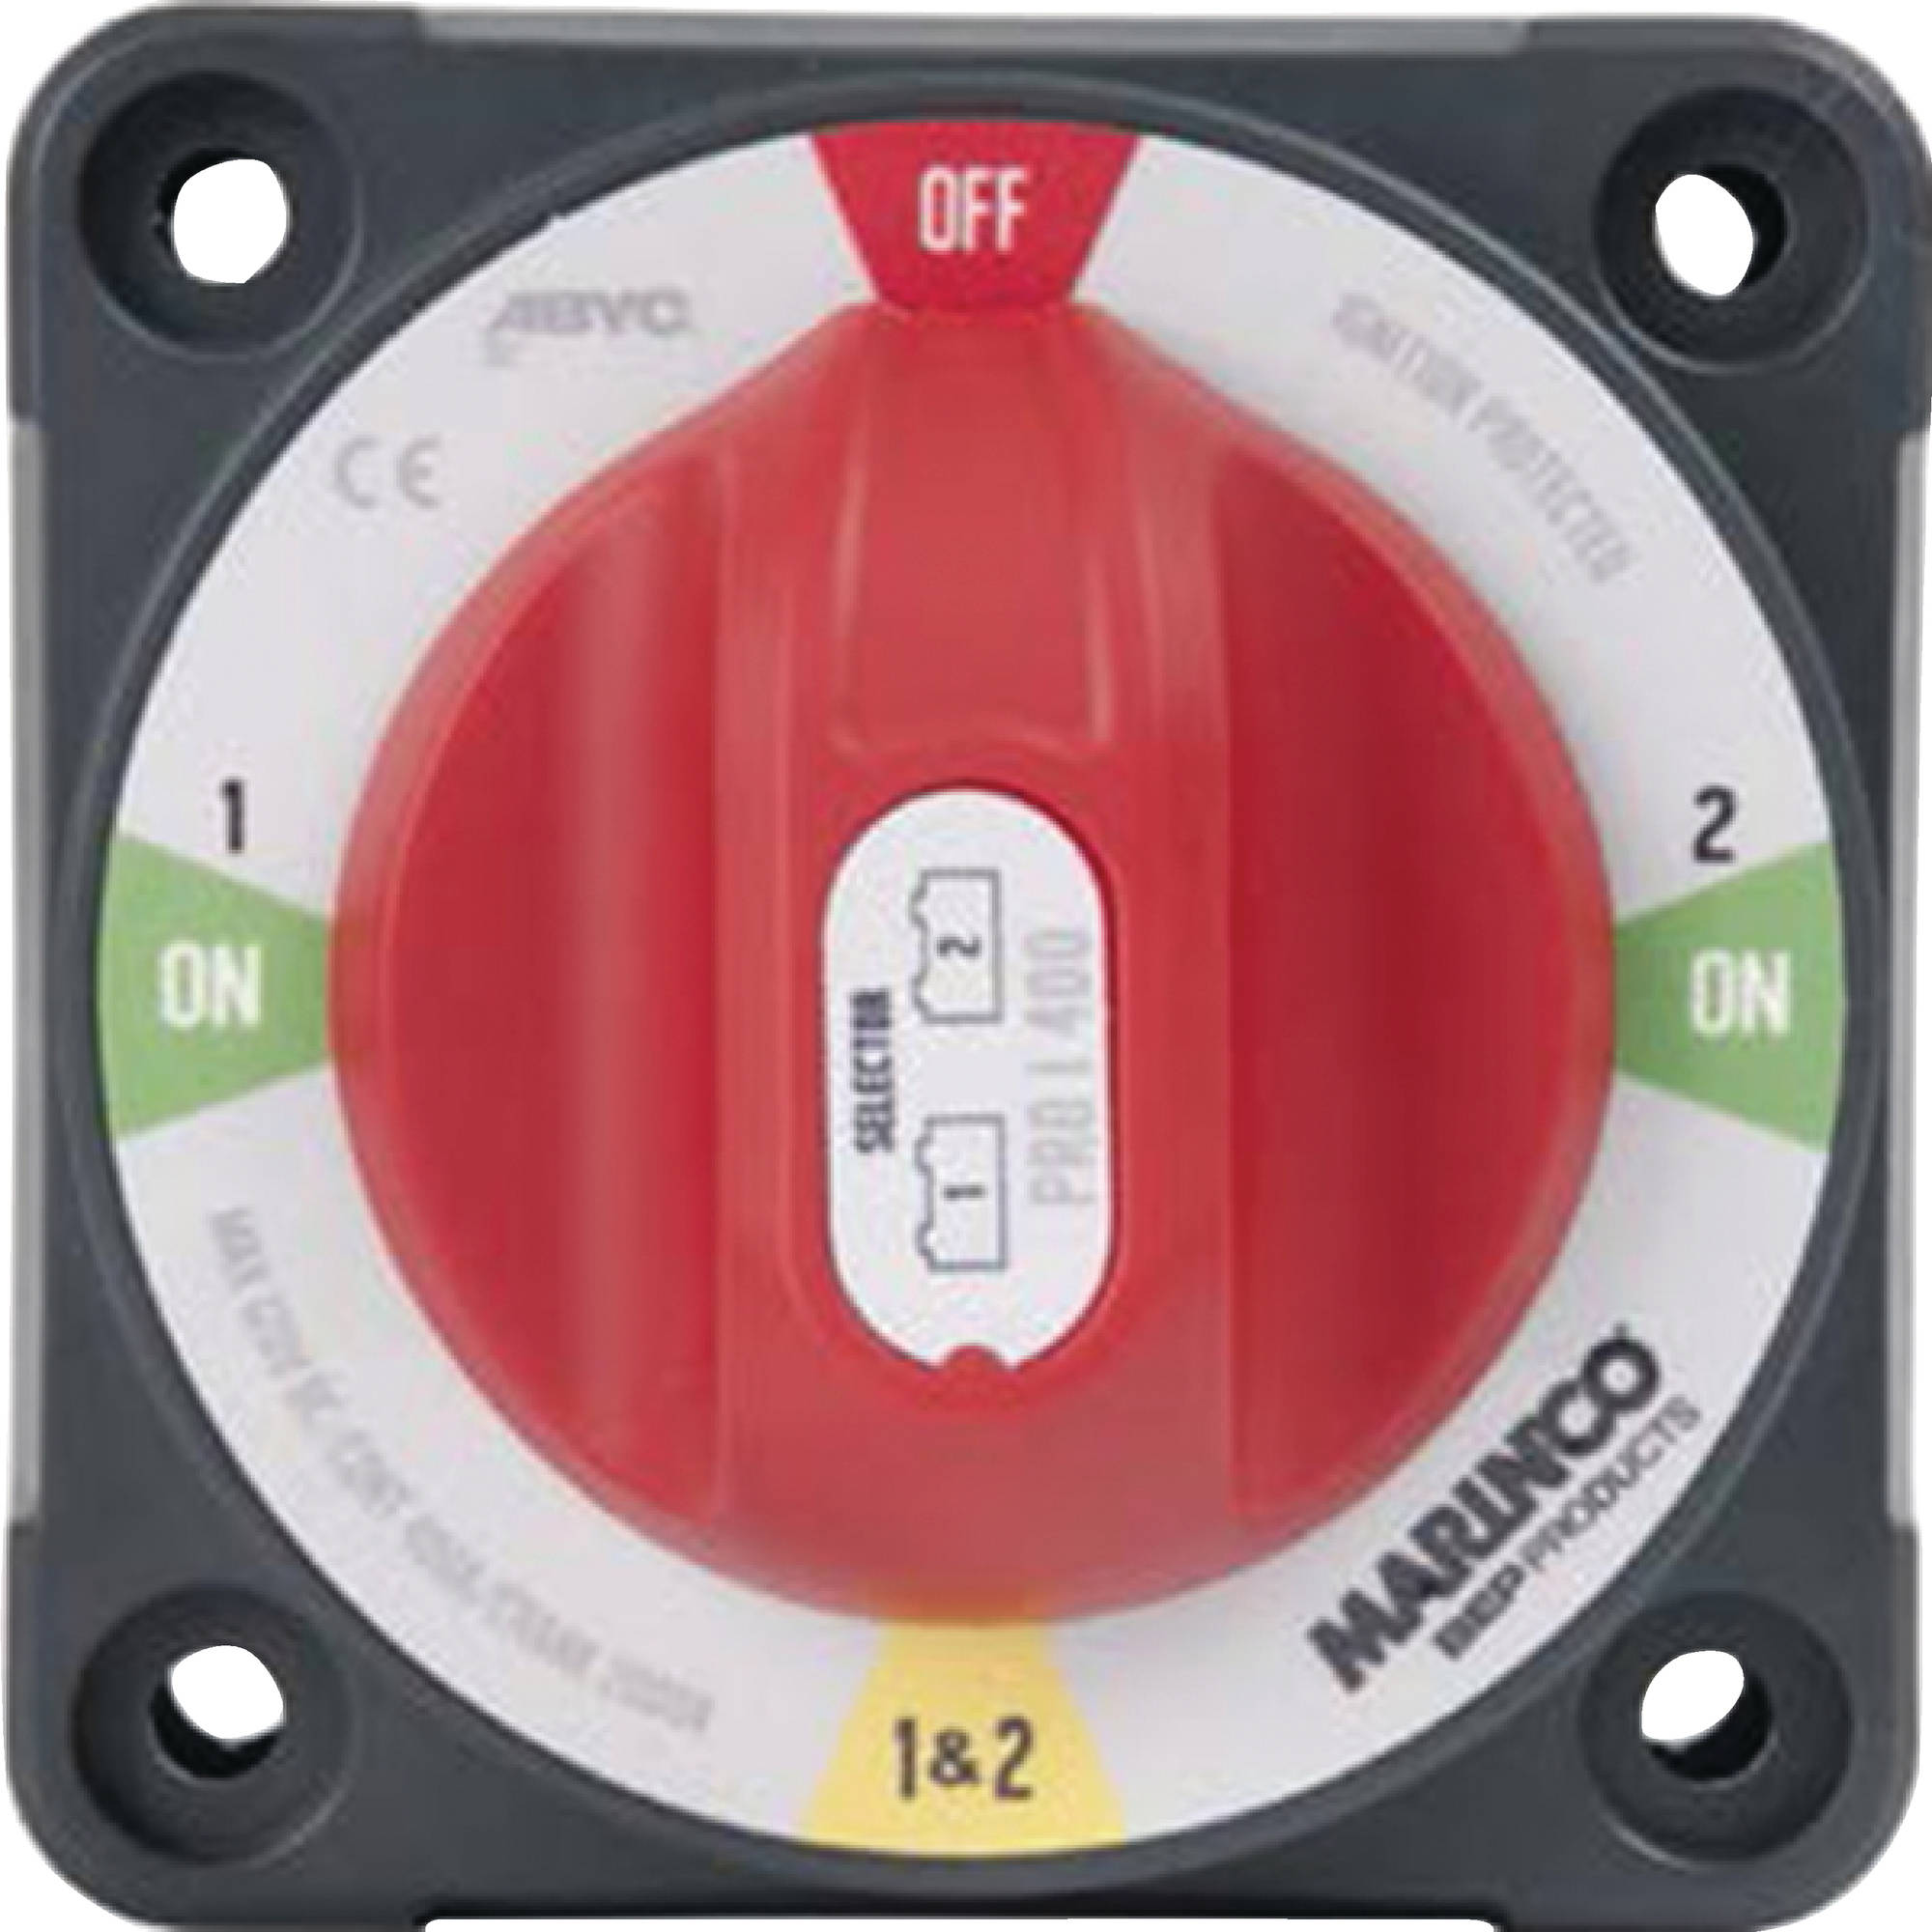 Marinco 771 Sfd Pro Installer Battery Selector Switch With Field Wiring Diagram Panel Disconnect 1 2 Both Off